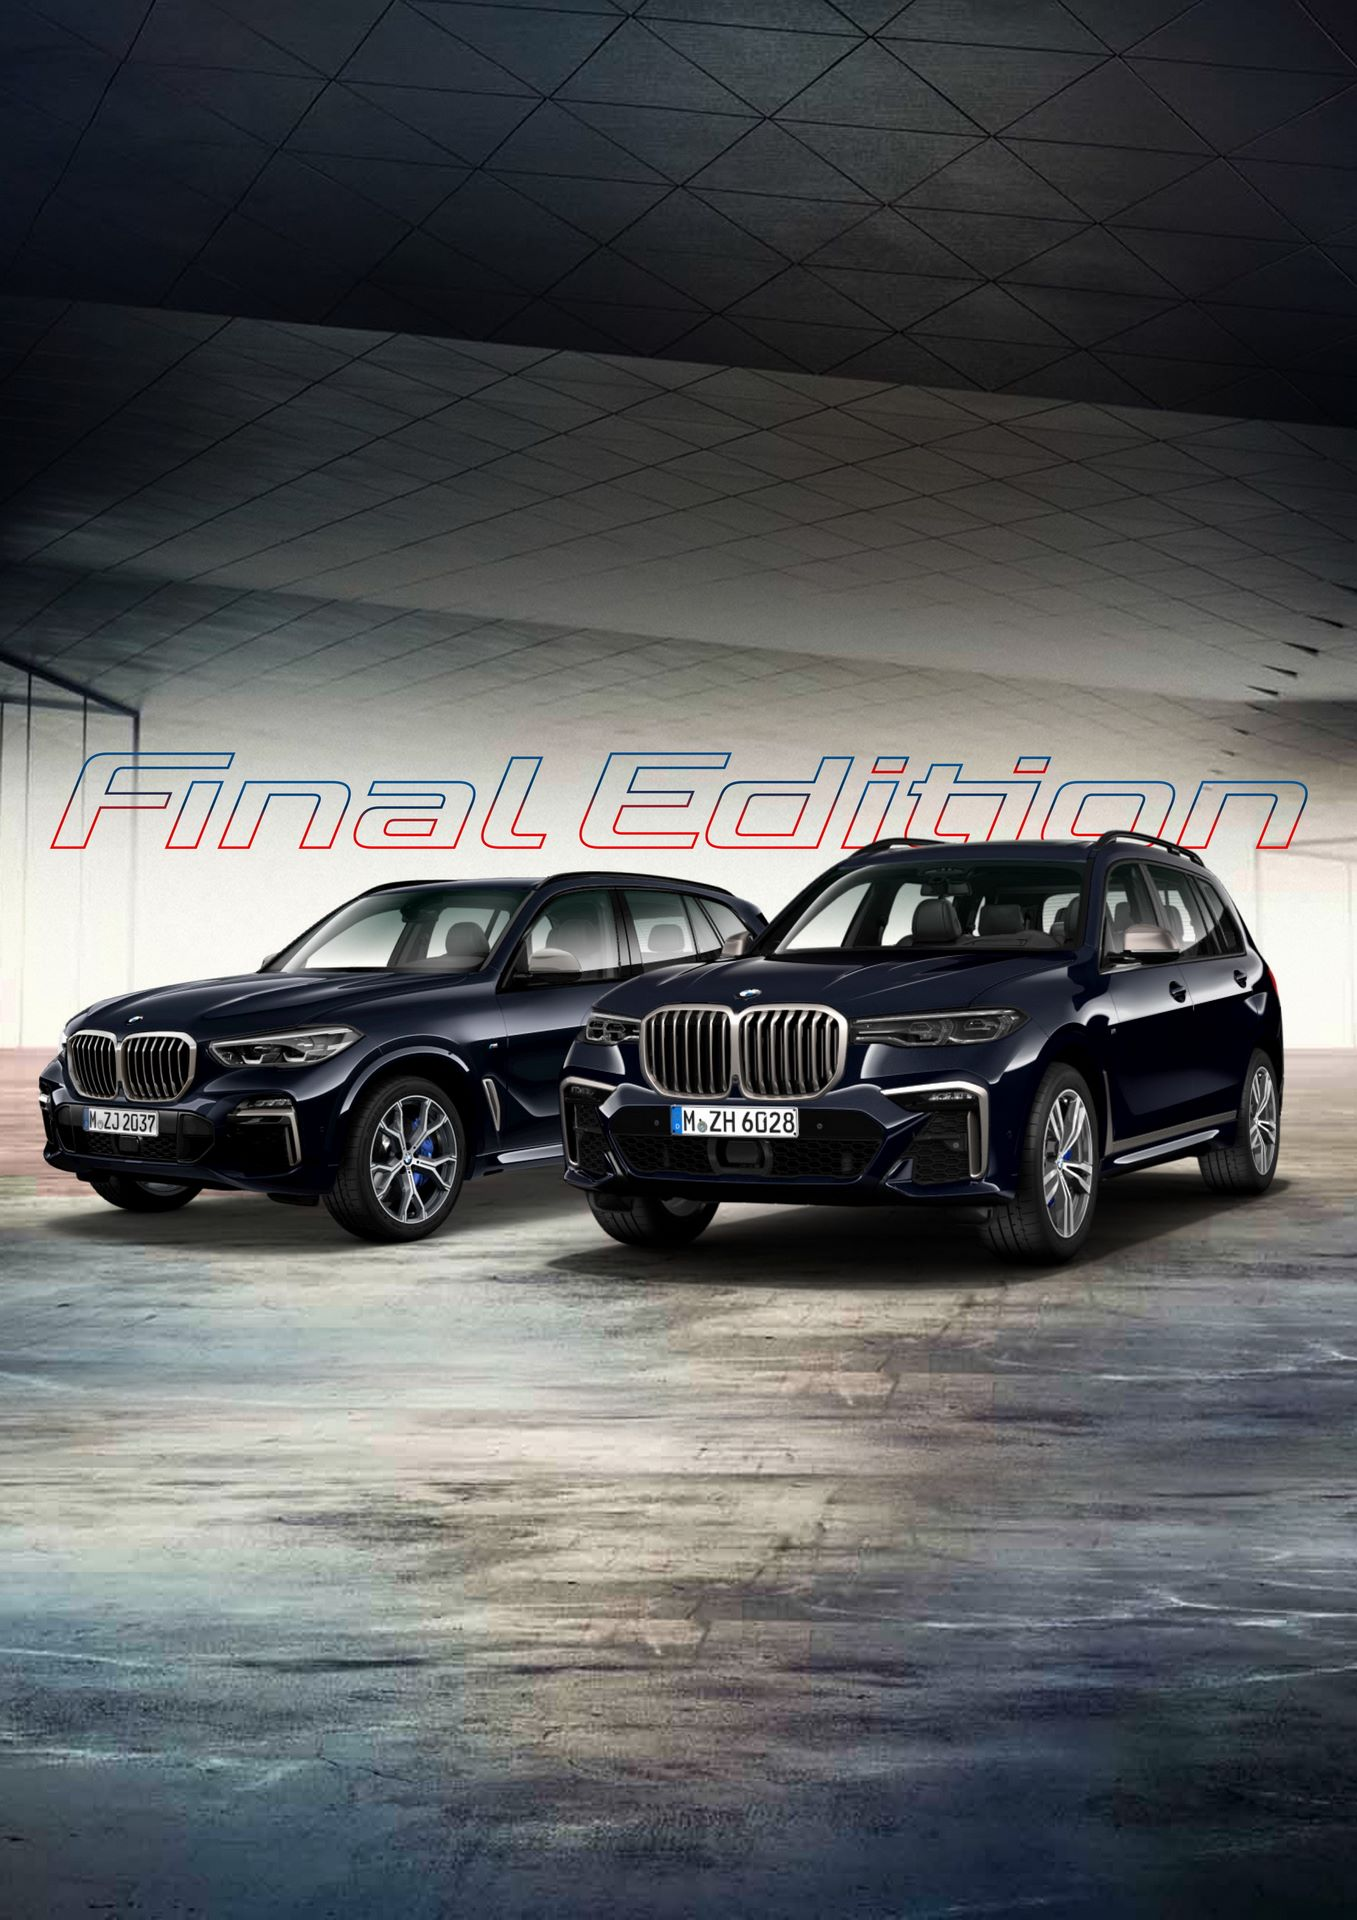 BMW-X5-M50d-and-X7-M50d-Final-Edition-2